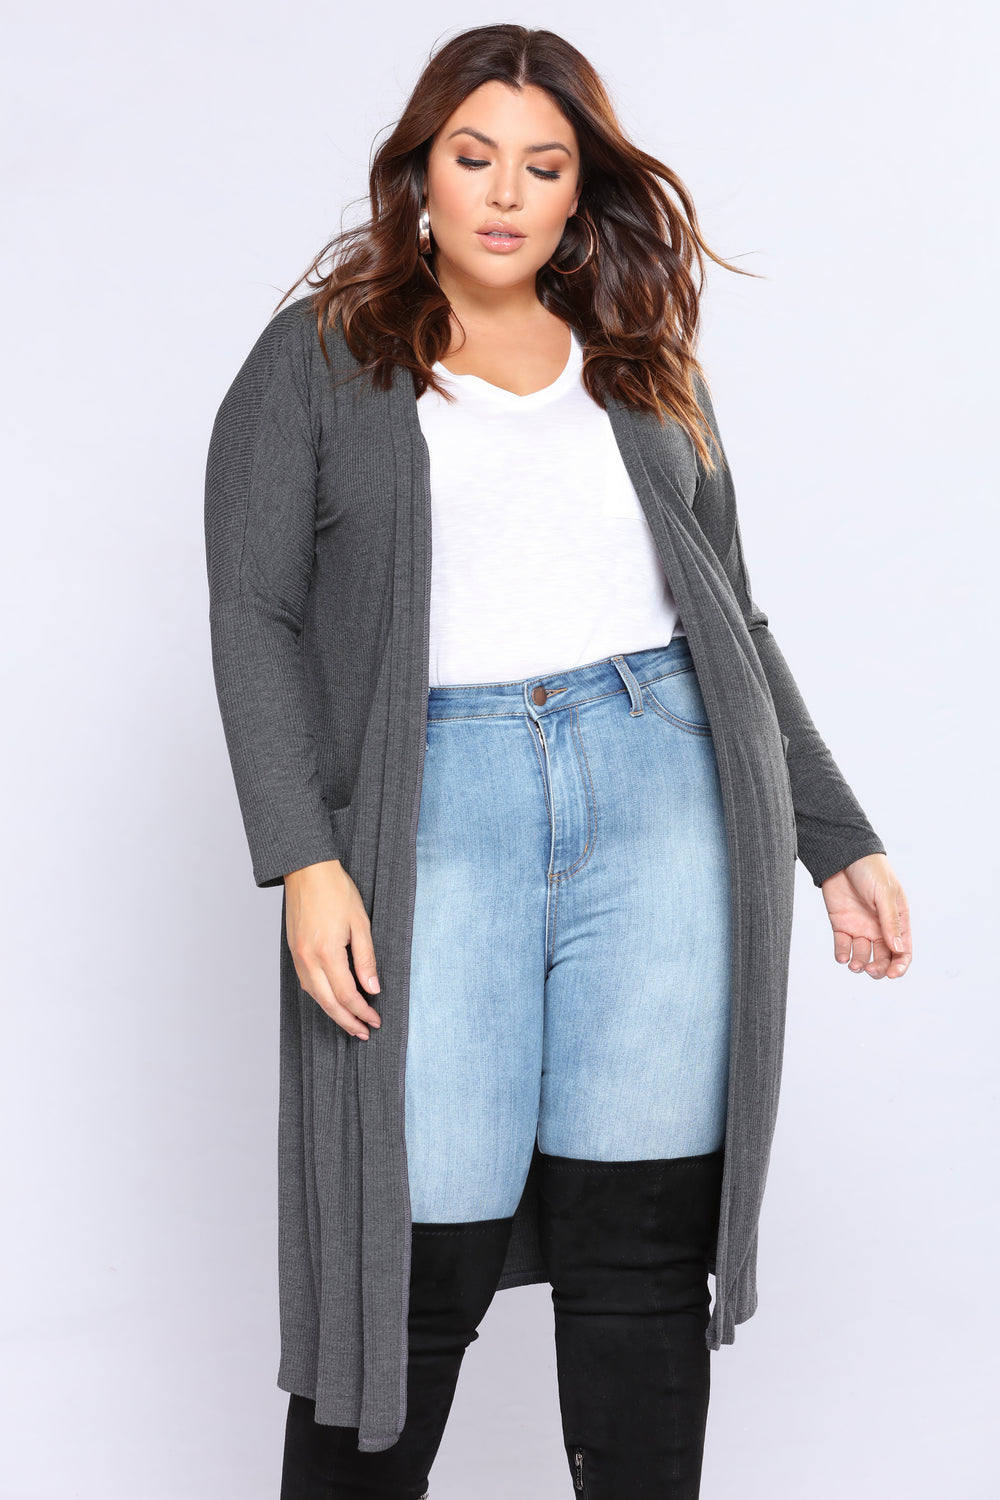 Layover Ribbed Cardigan - Charcoal